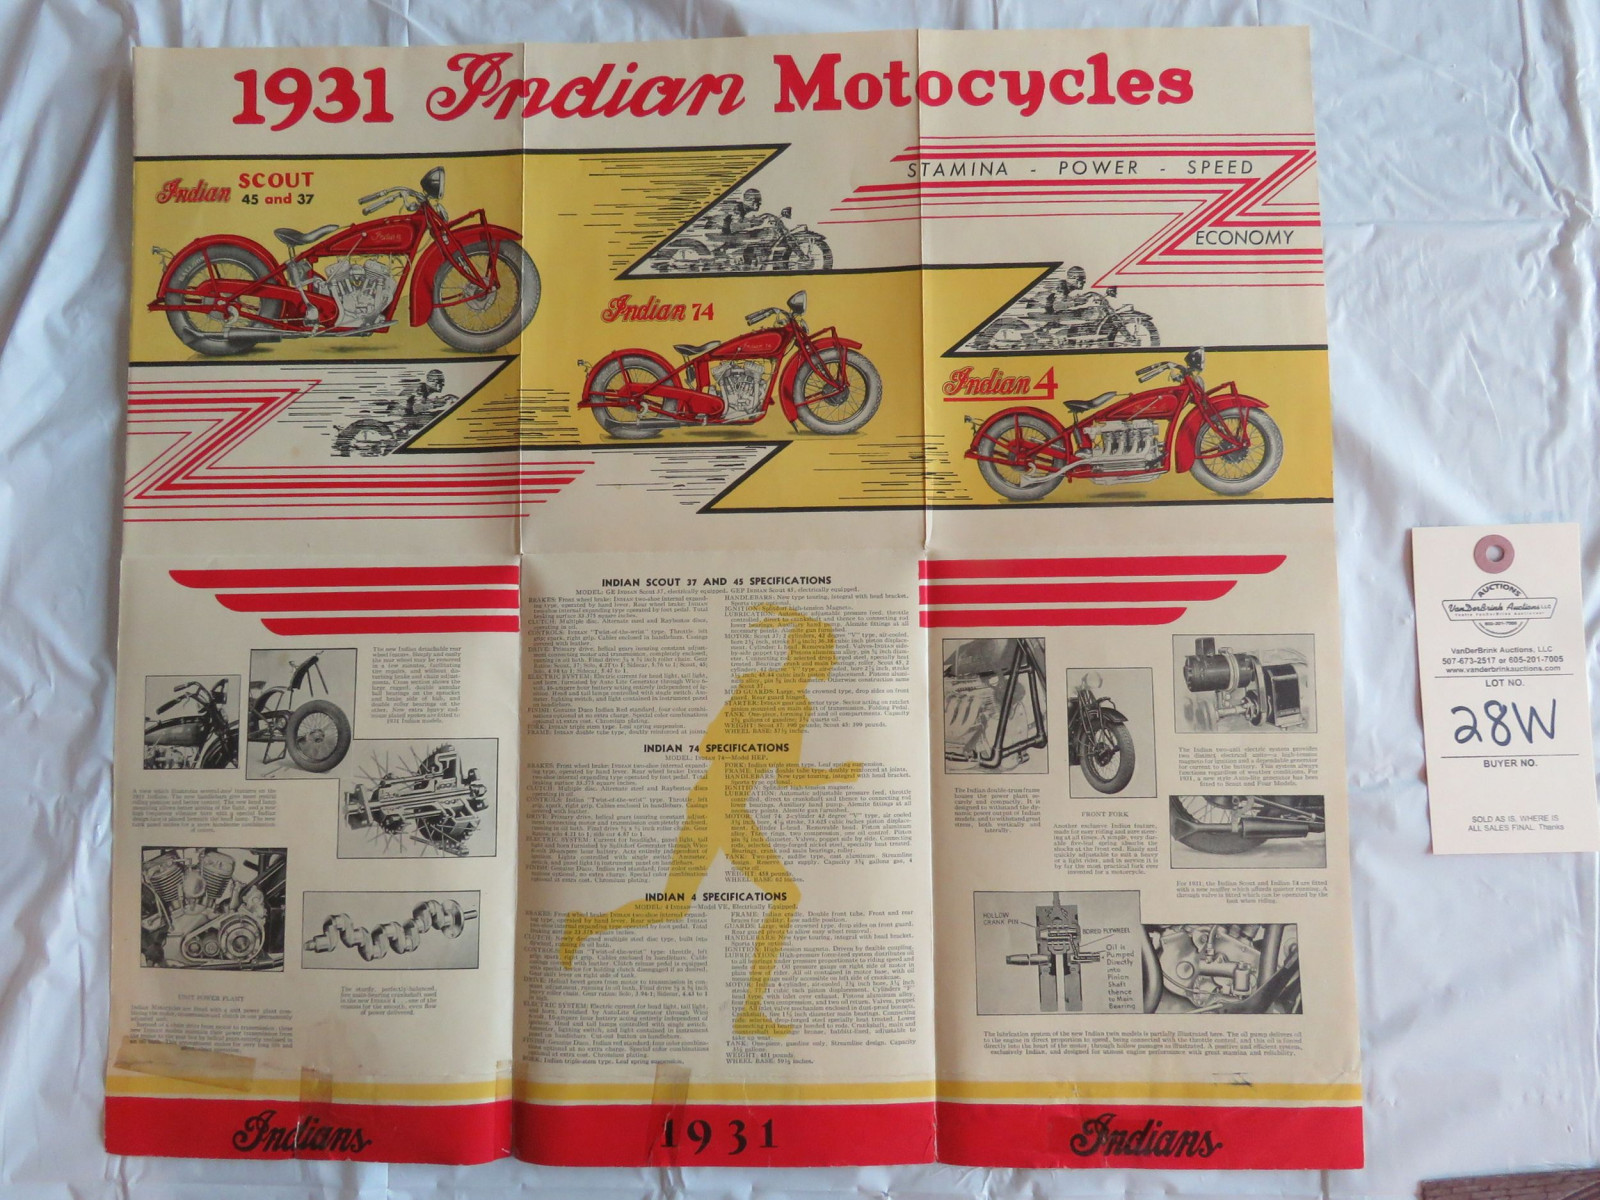 1931 Indian Motorcycles Brochure - Image 2